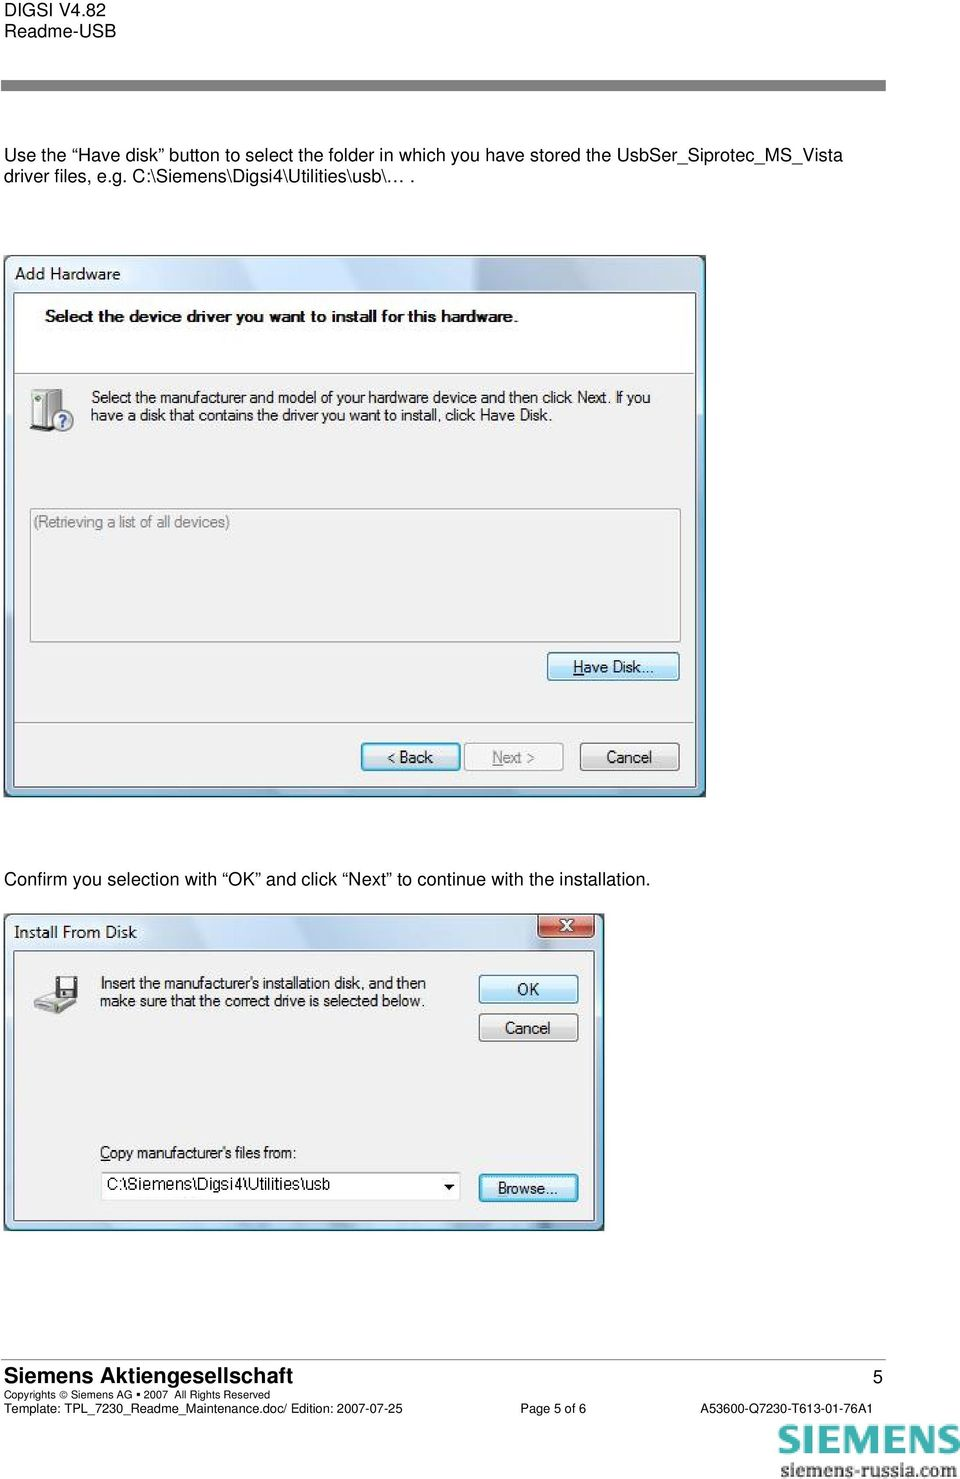 Confirm you selection with OK and click Next to continue with the installation.